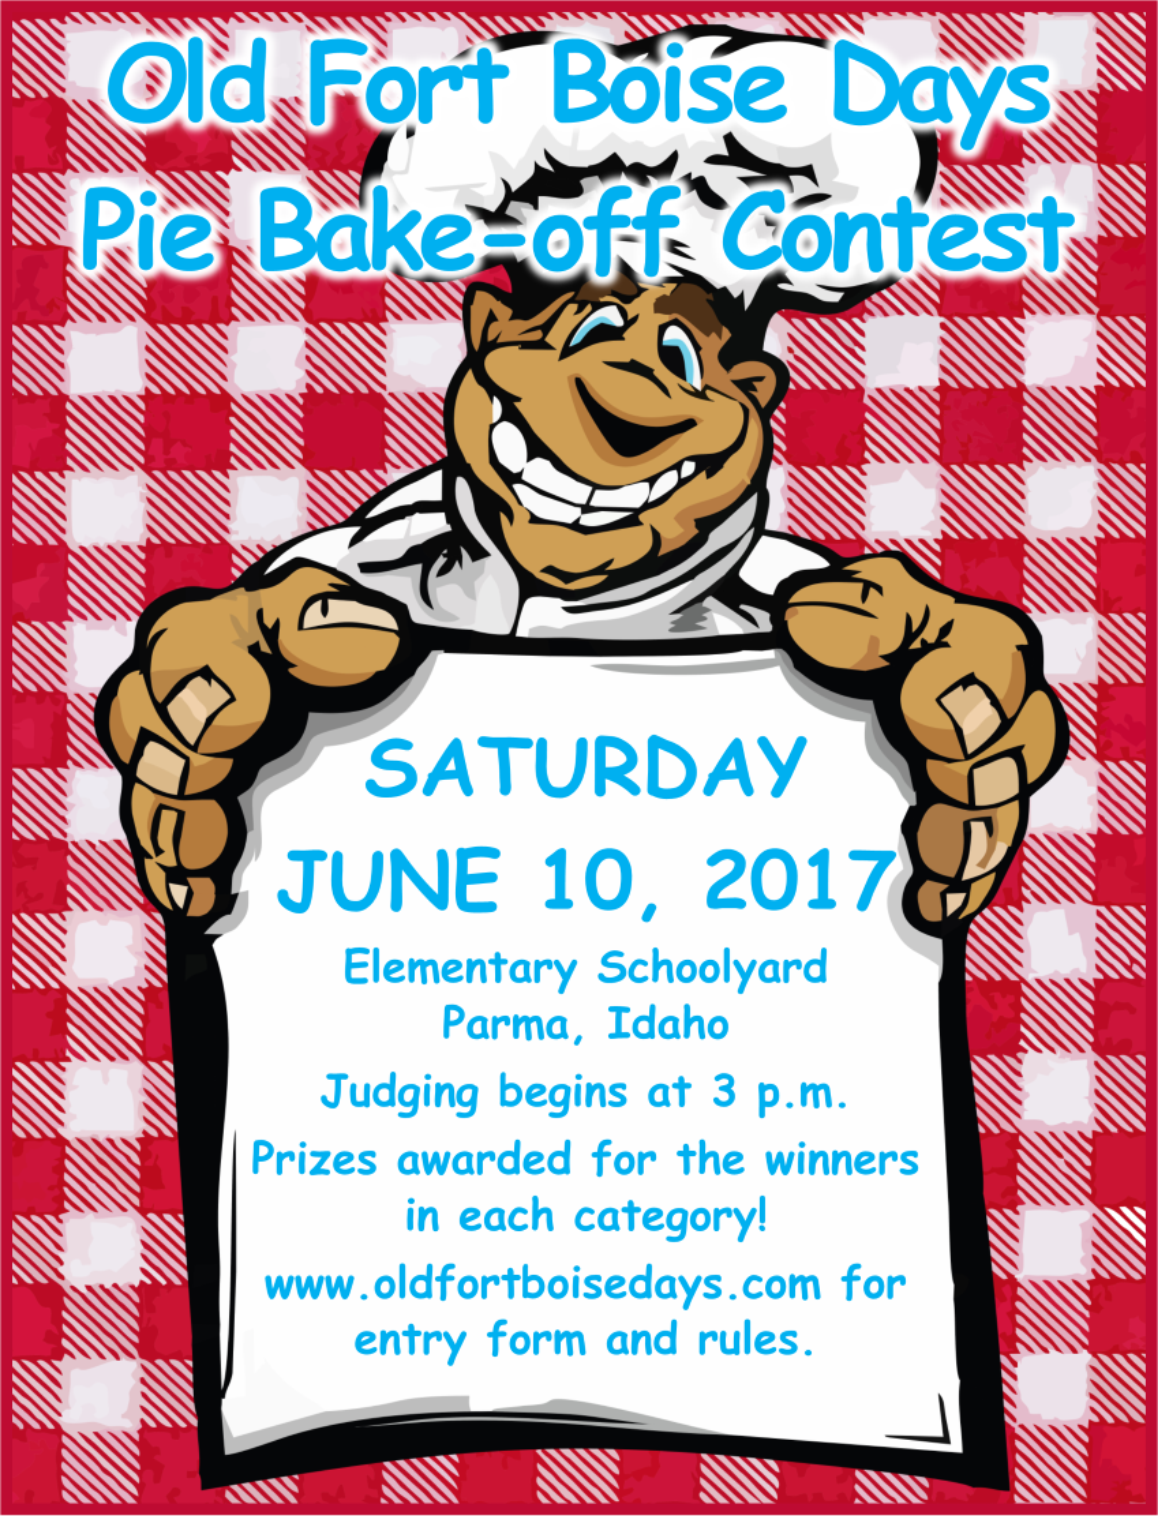 Pie Bake Off Contest Old Fort Boise Days 2018